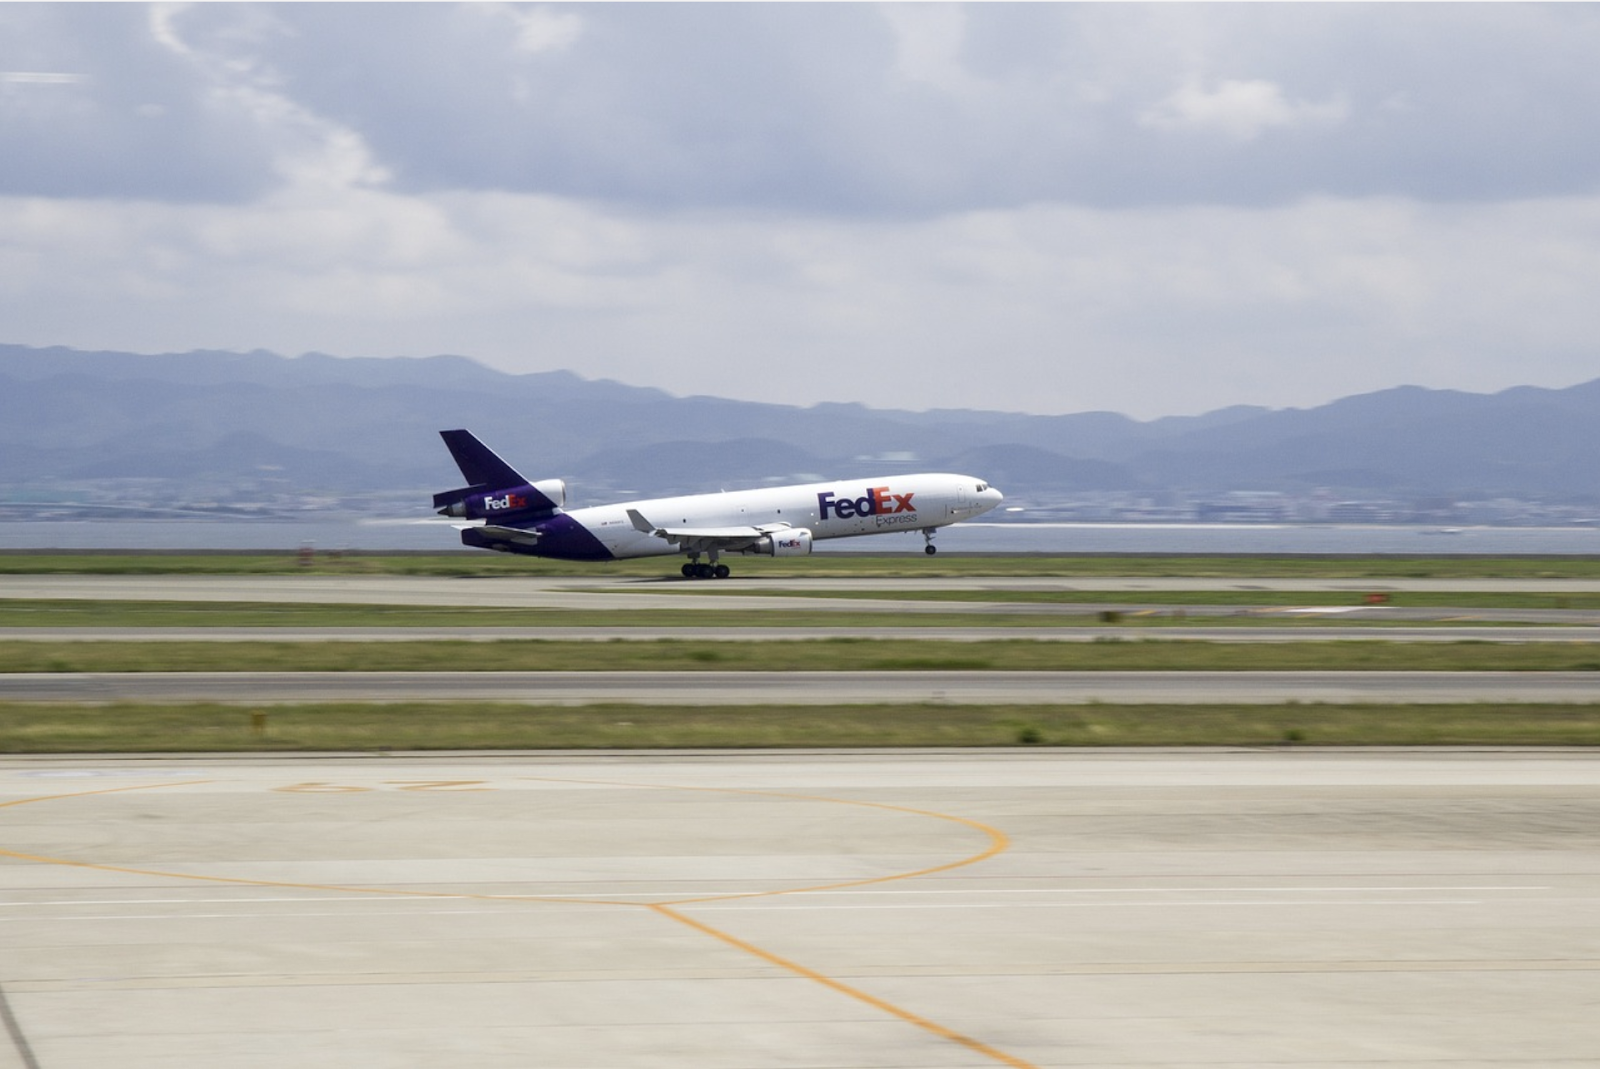 A air plane with the FedEx branding is taking off from the runway